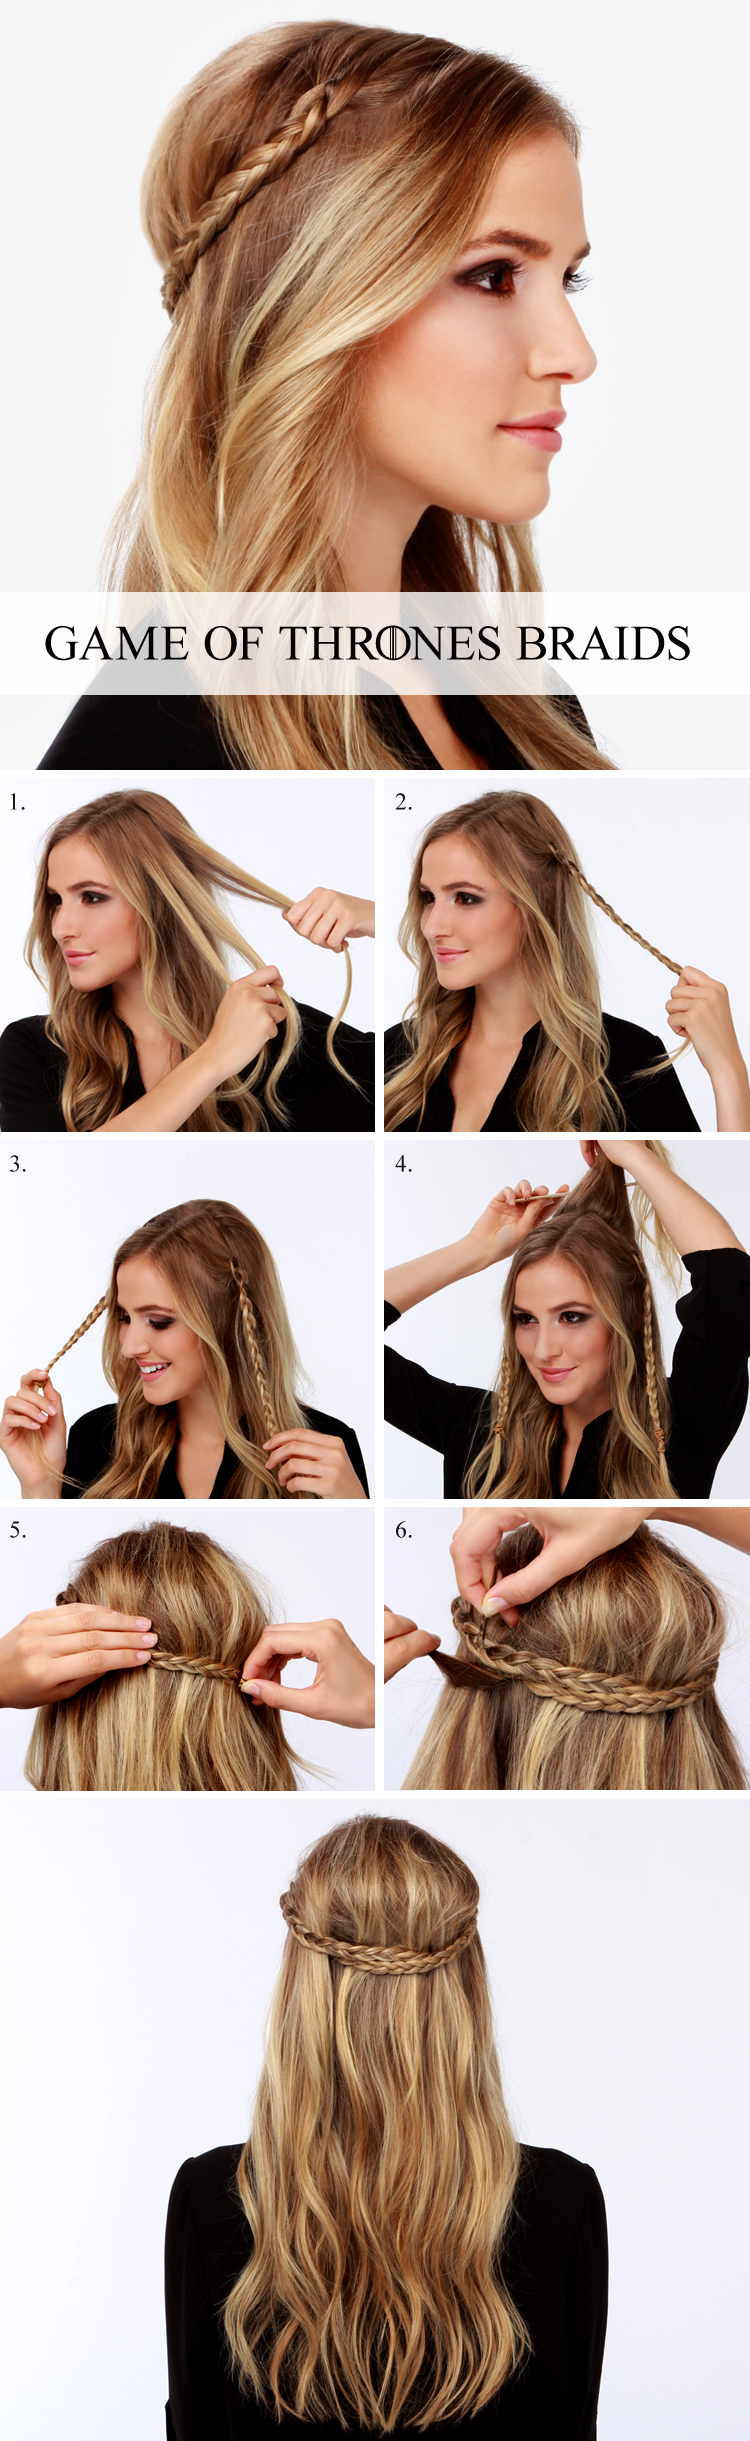 Game of thrones hair braids tutorial